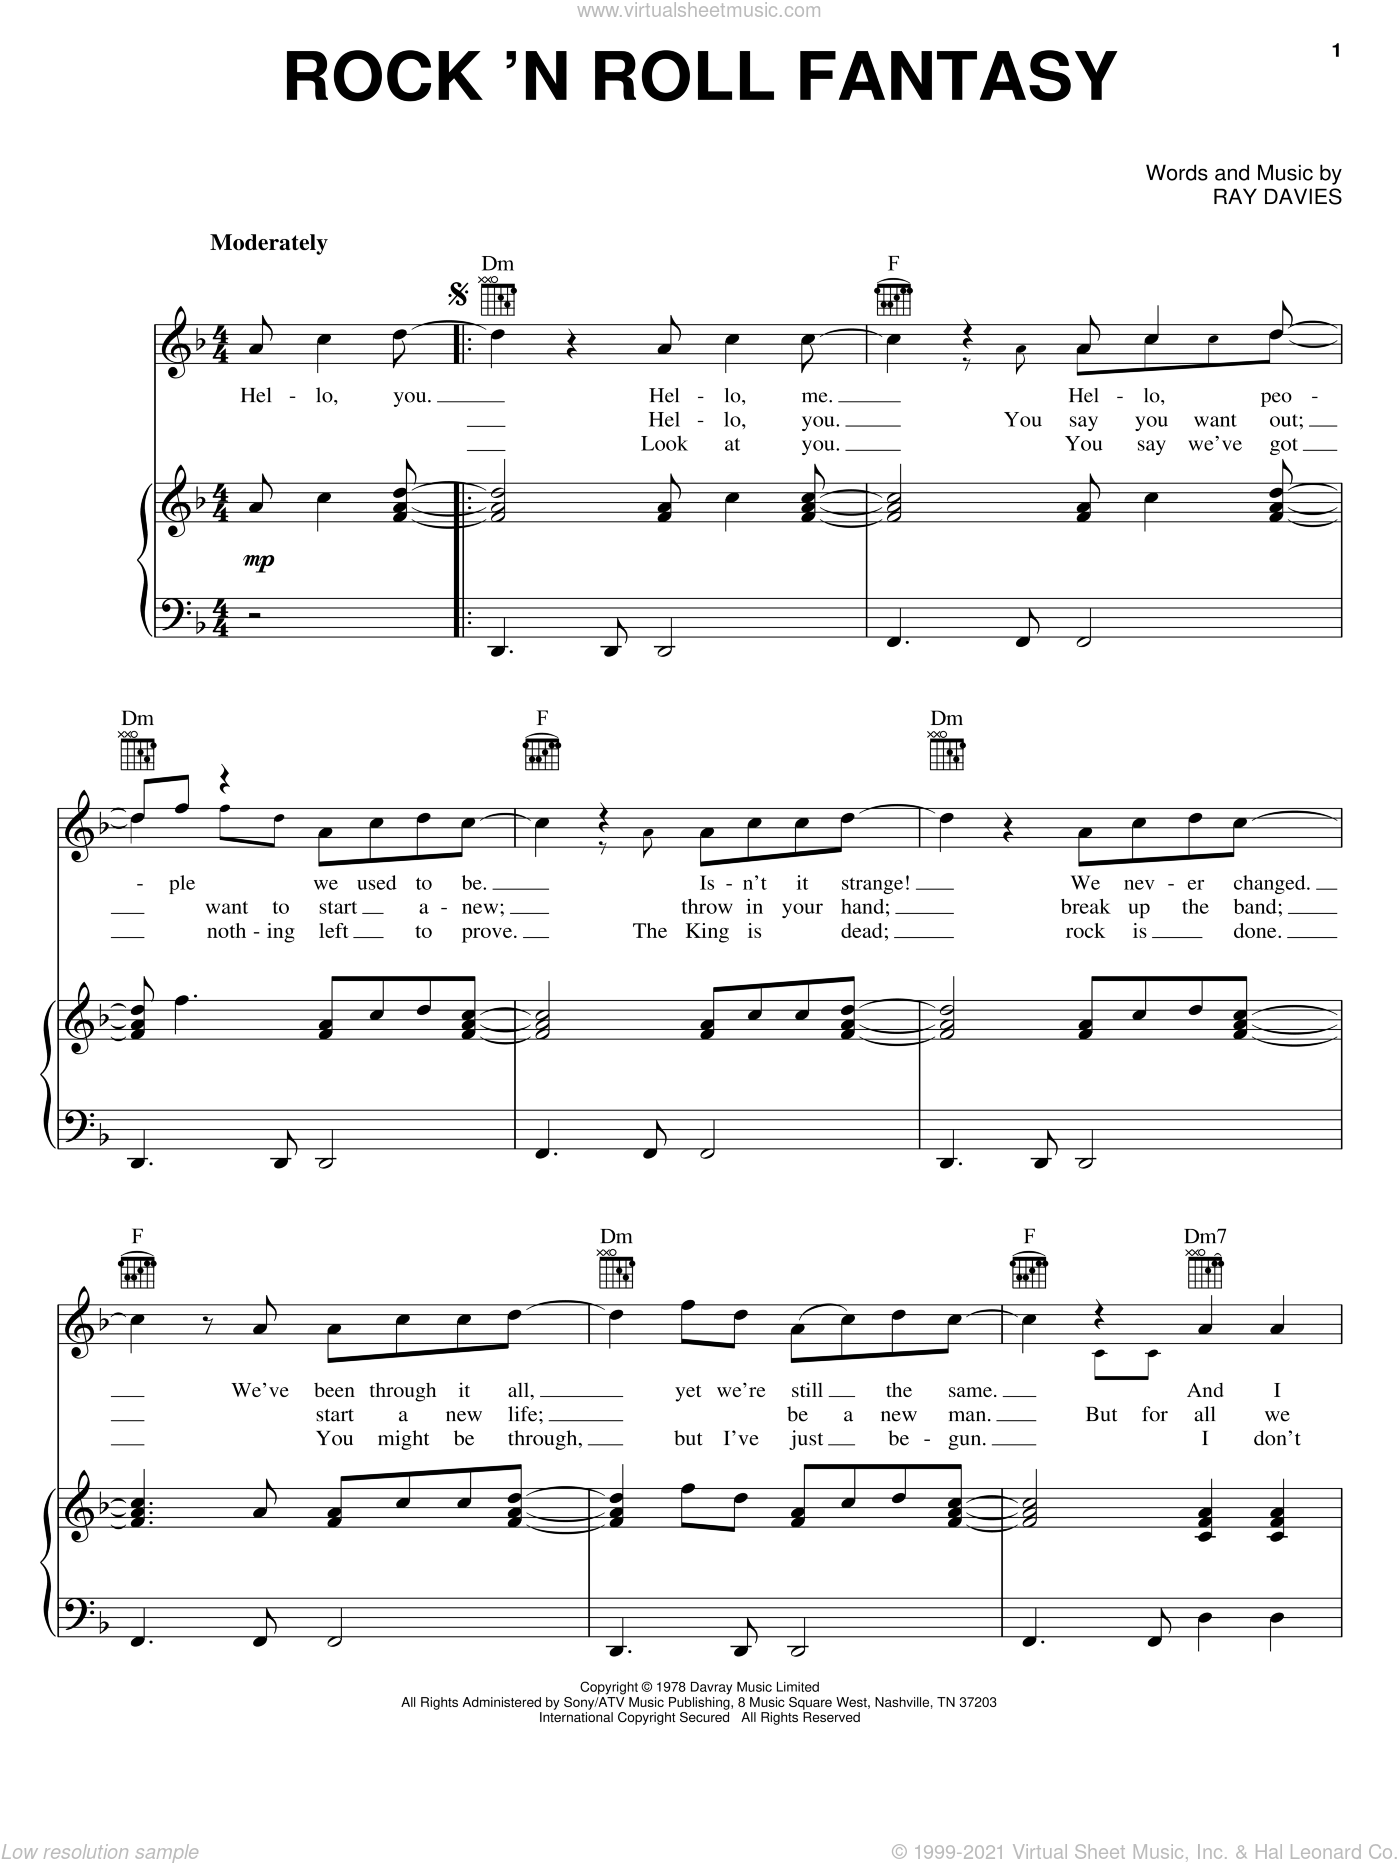 Rock 'N Roll Fantasy sheet music for voice, piano or guitar by The Kinks and Ray Davies, intermediate